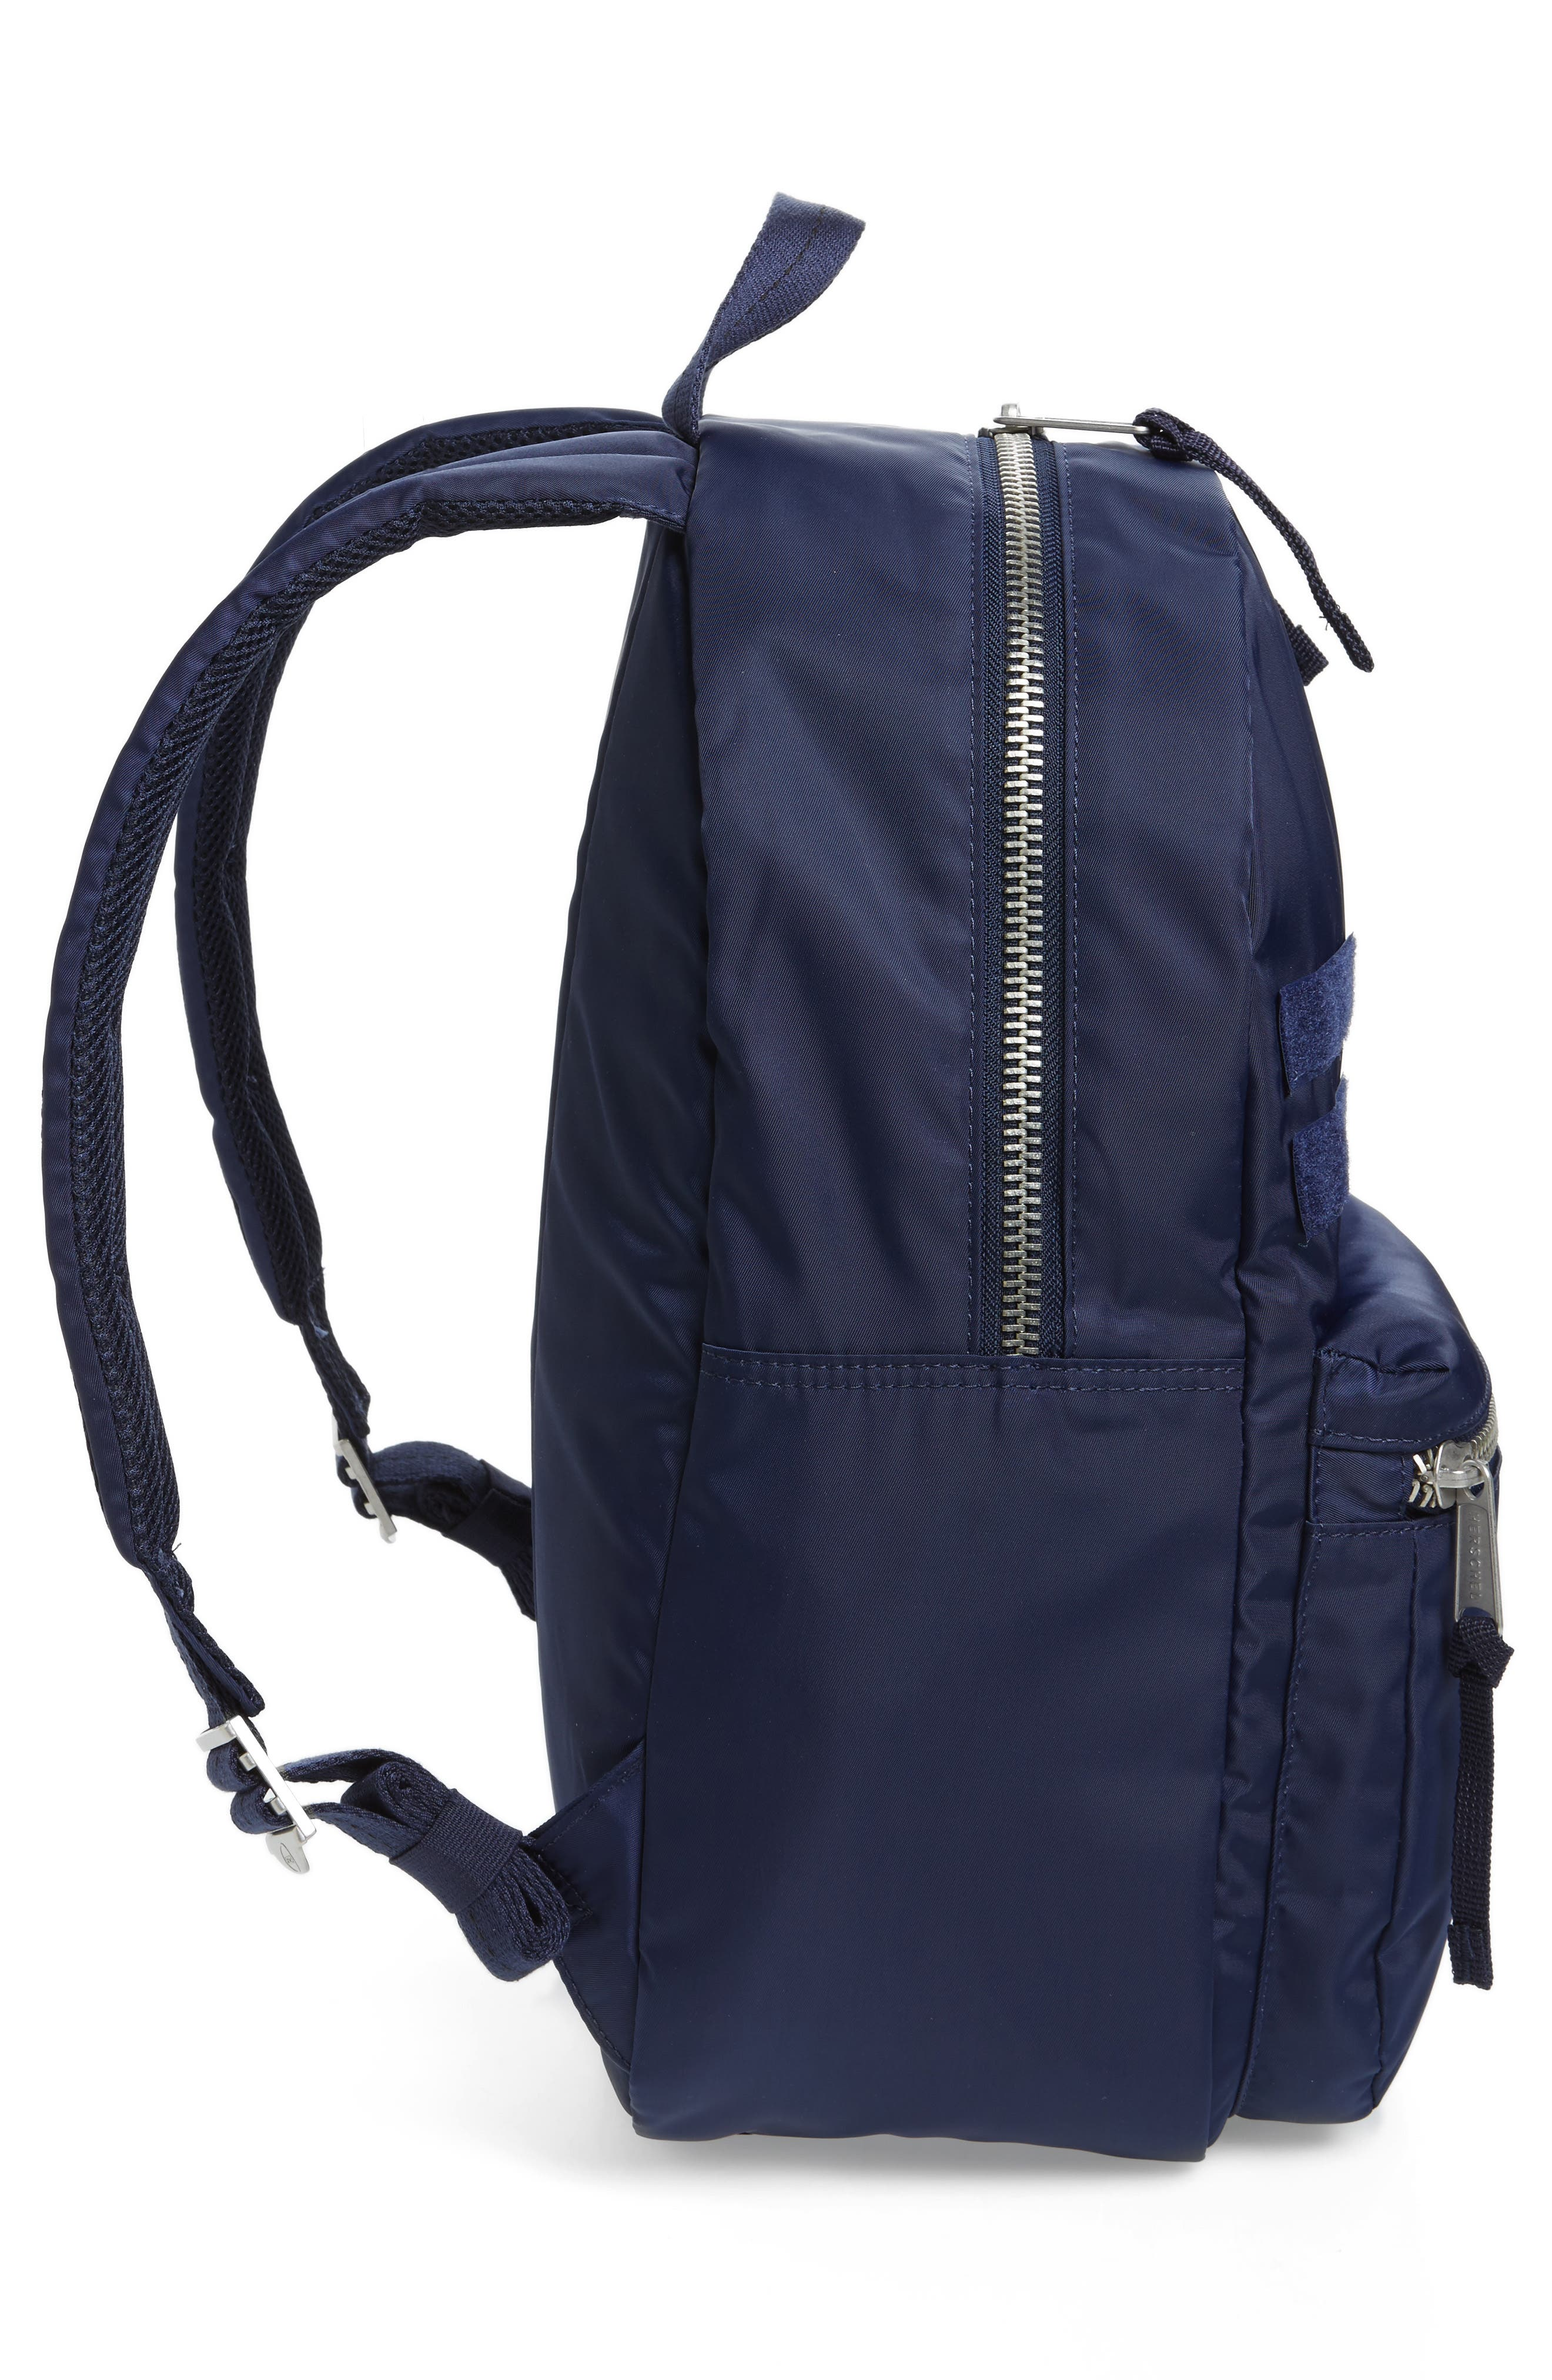 Lawson Surplus Collection Backpack,                             Alternate thumbnail 5, color,                             477